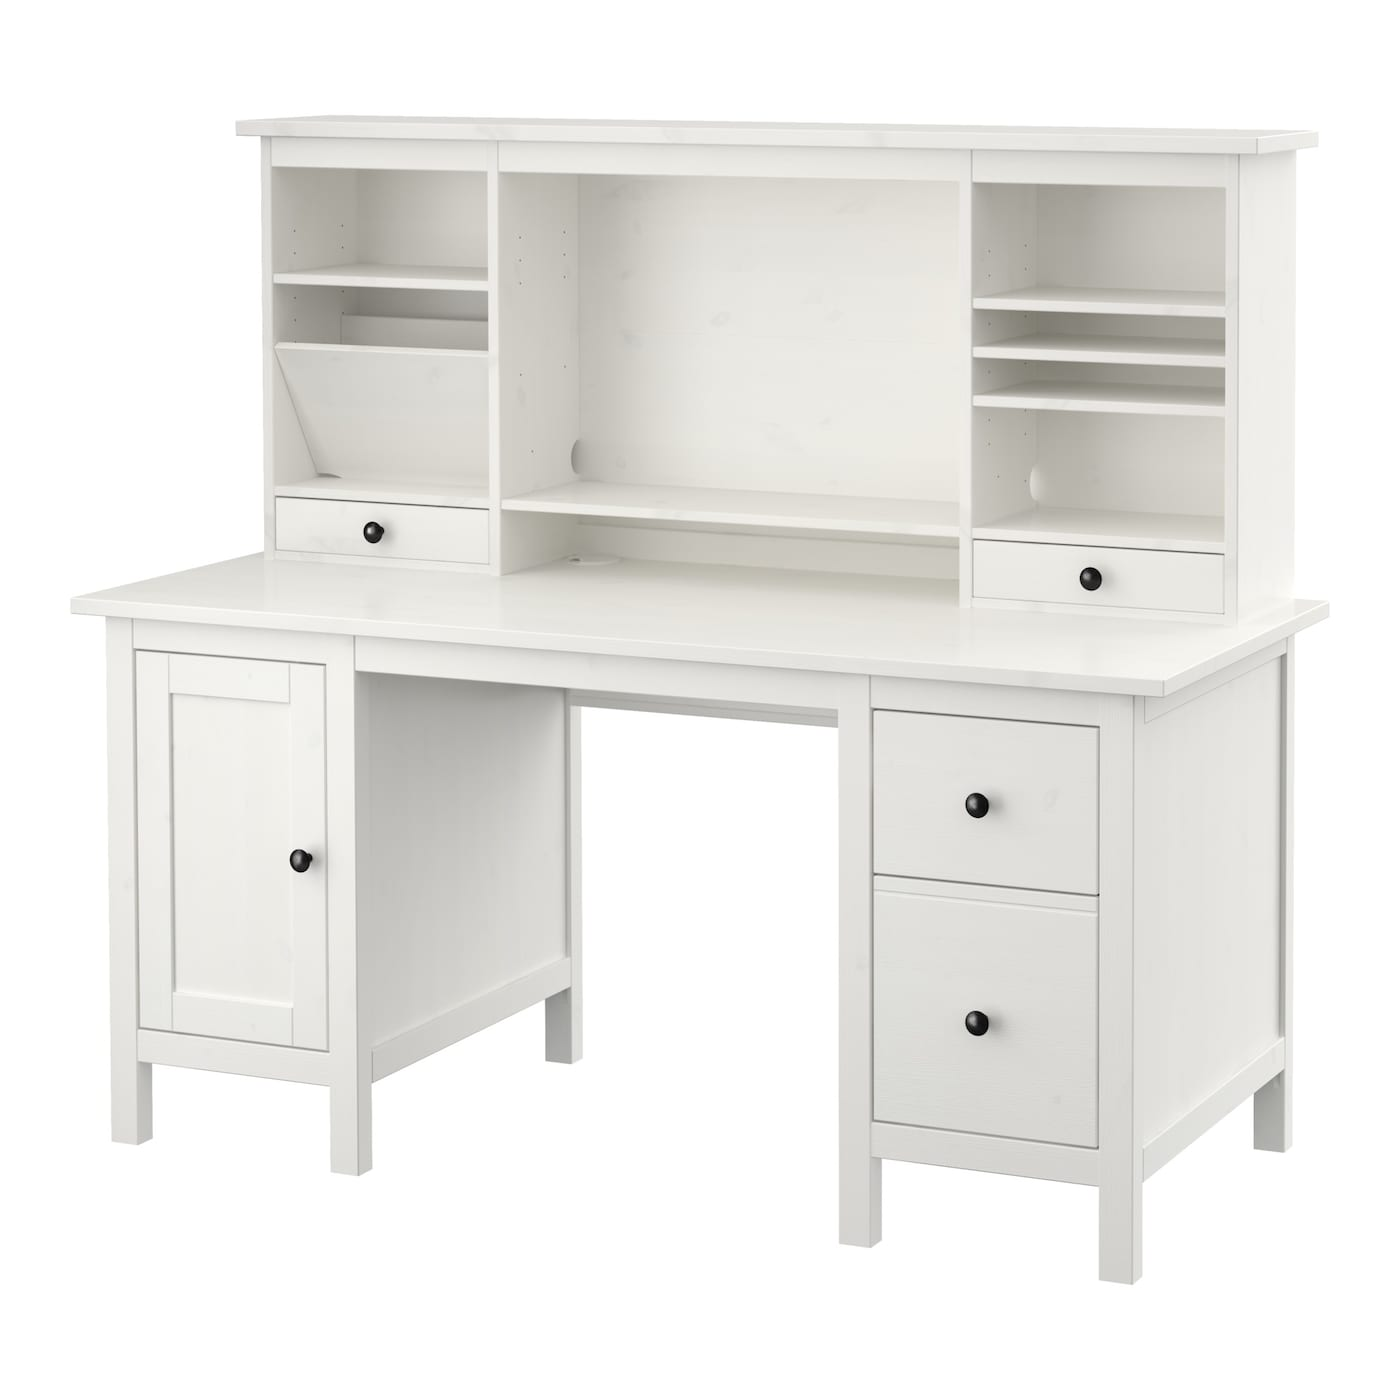 Hemnes Desk With Add On Unit White Stain 155x137 Cm Ikea